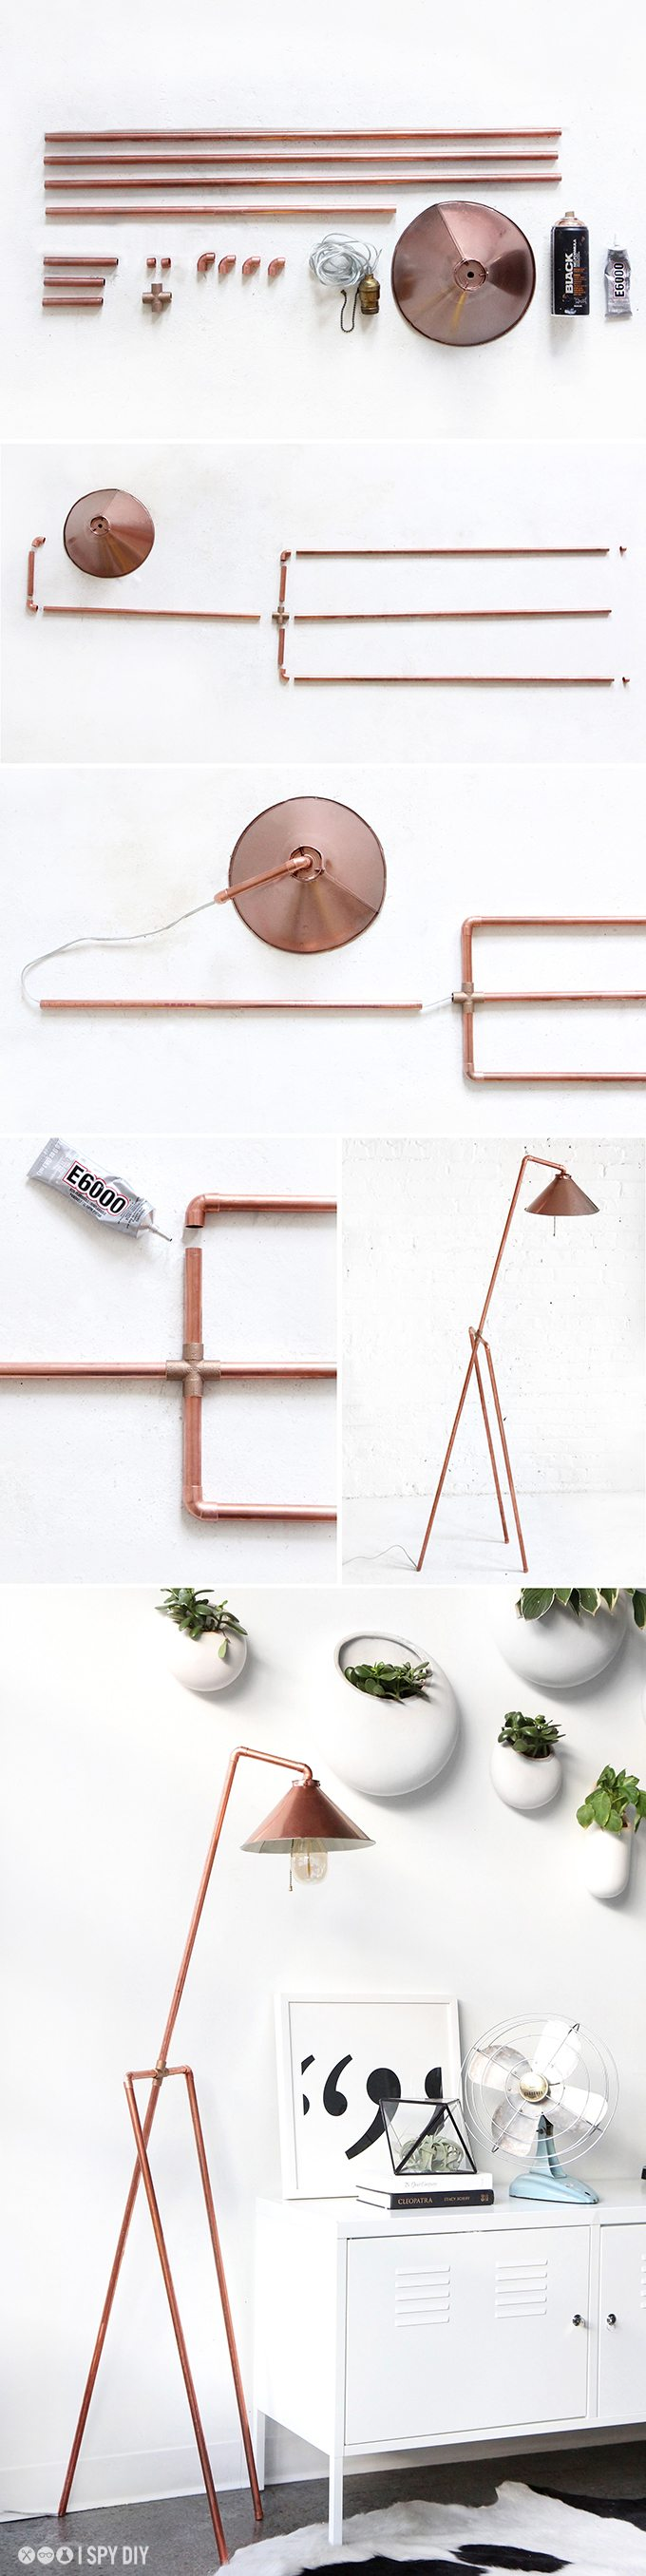 DIY Copper Pipe Floor Lamp